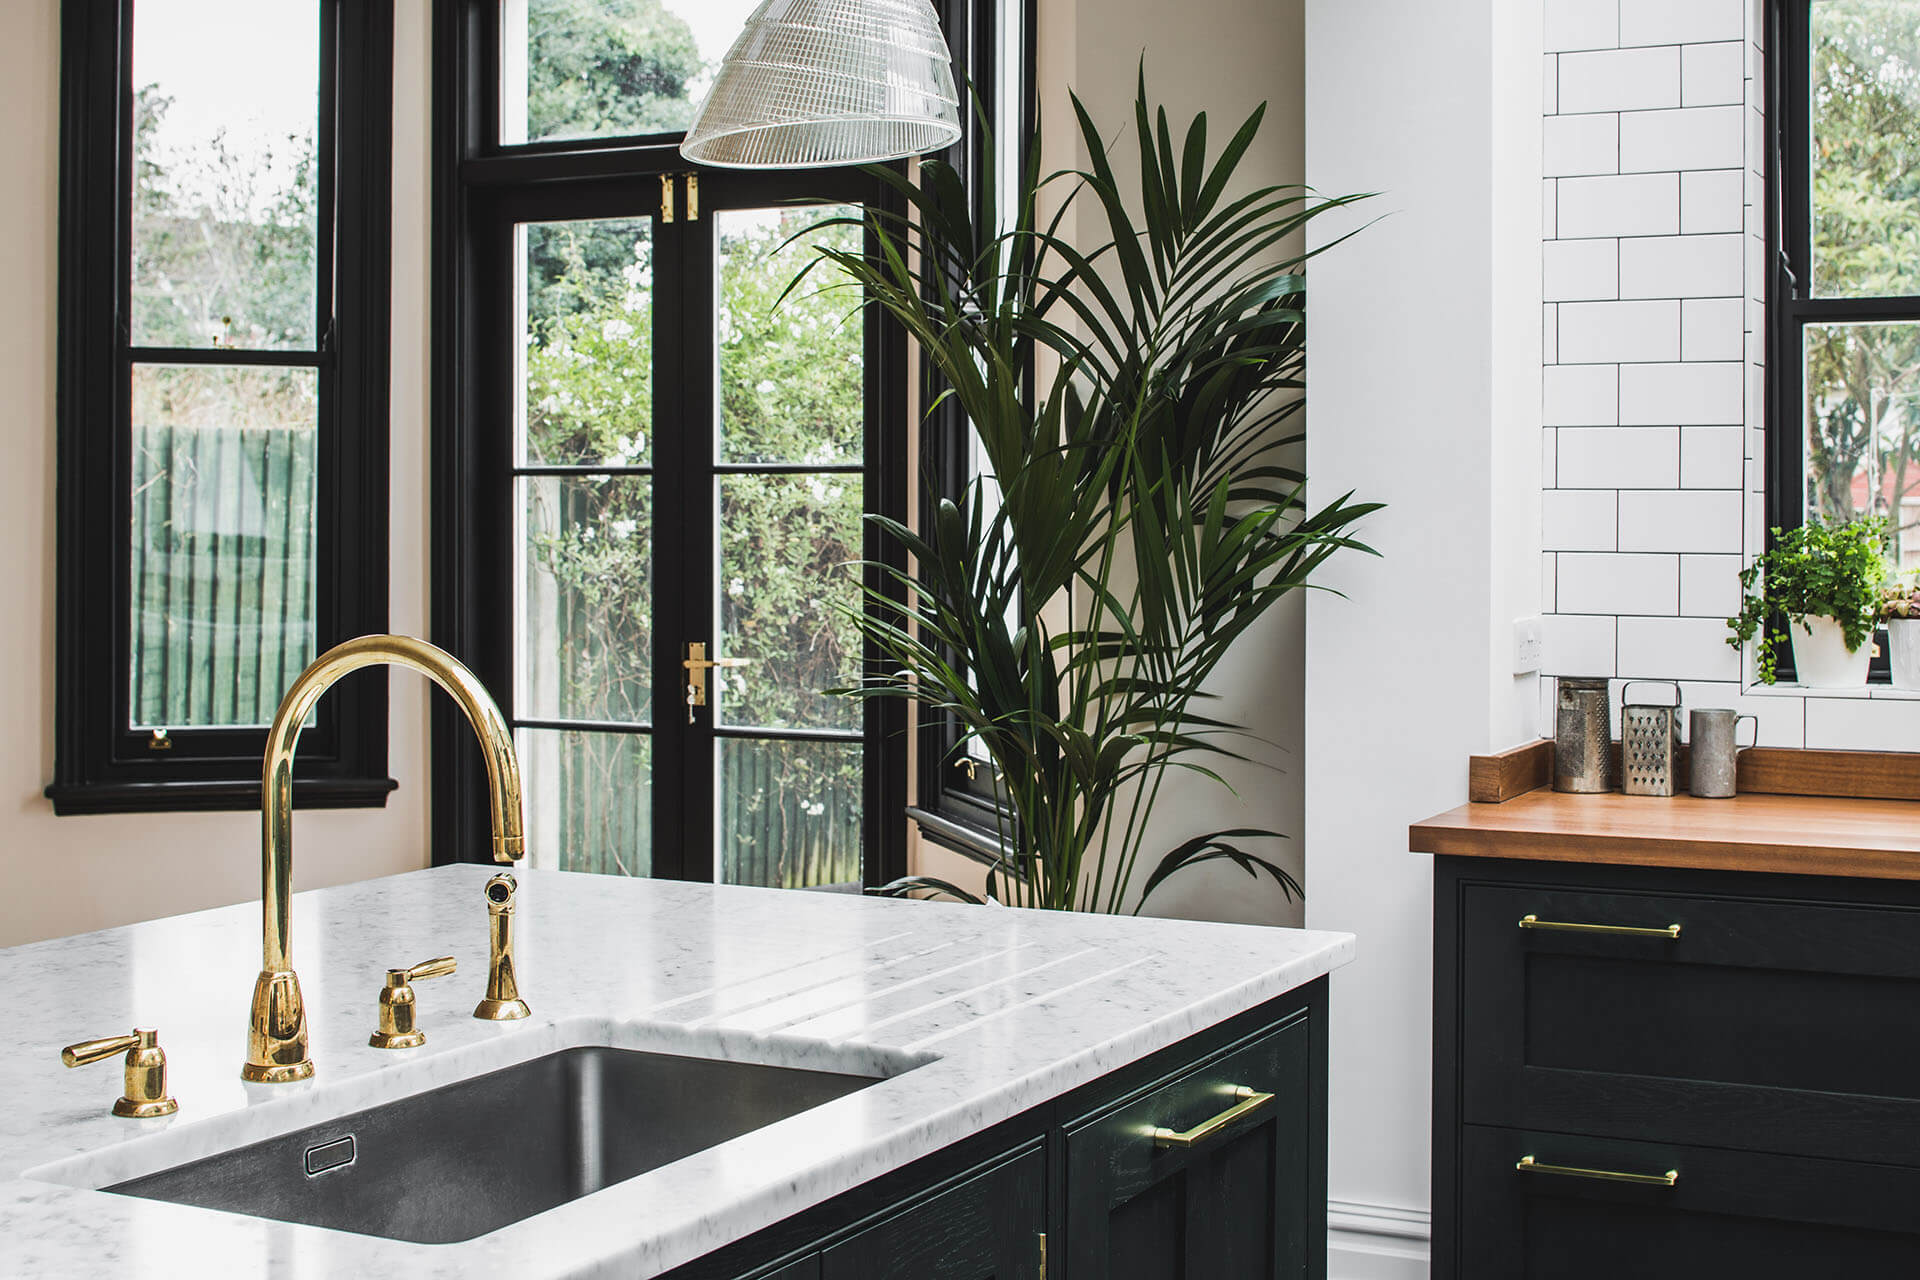 Dark Green Shaker Kitchen with sink in the island, Carrera Marble Island worktopand Perrin & Rowe Polished Brass Tap, hand painted in Little Green Obsidian Green (216)